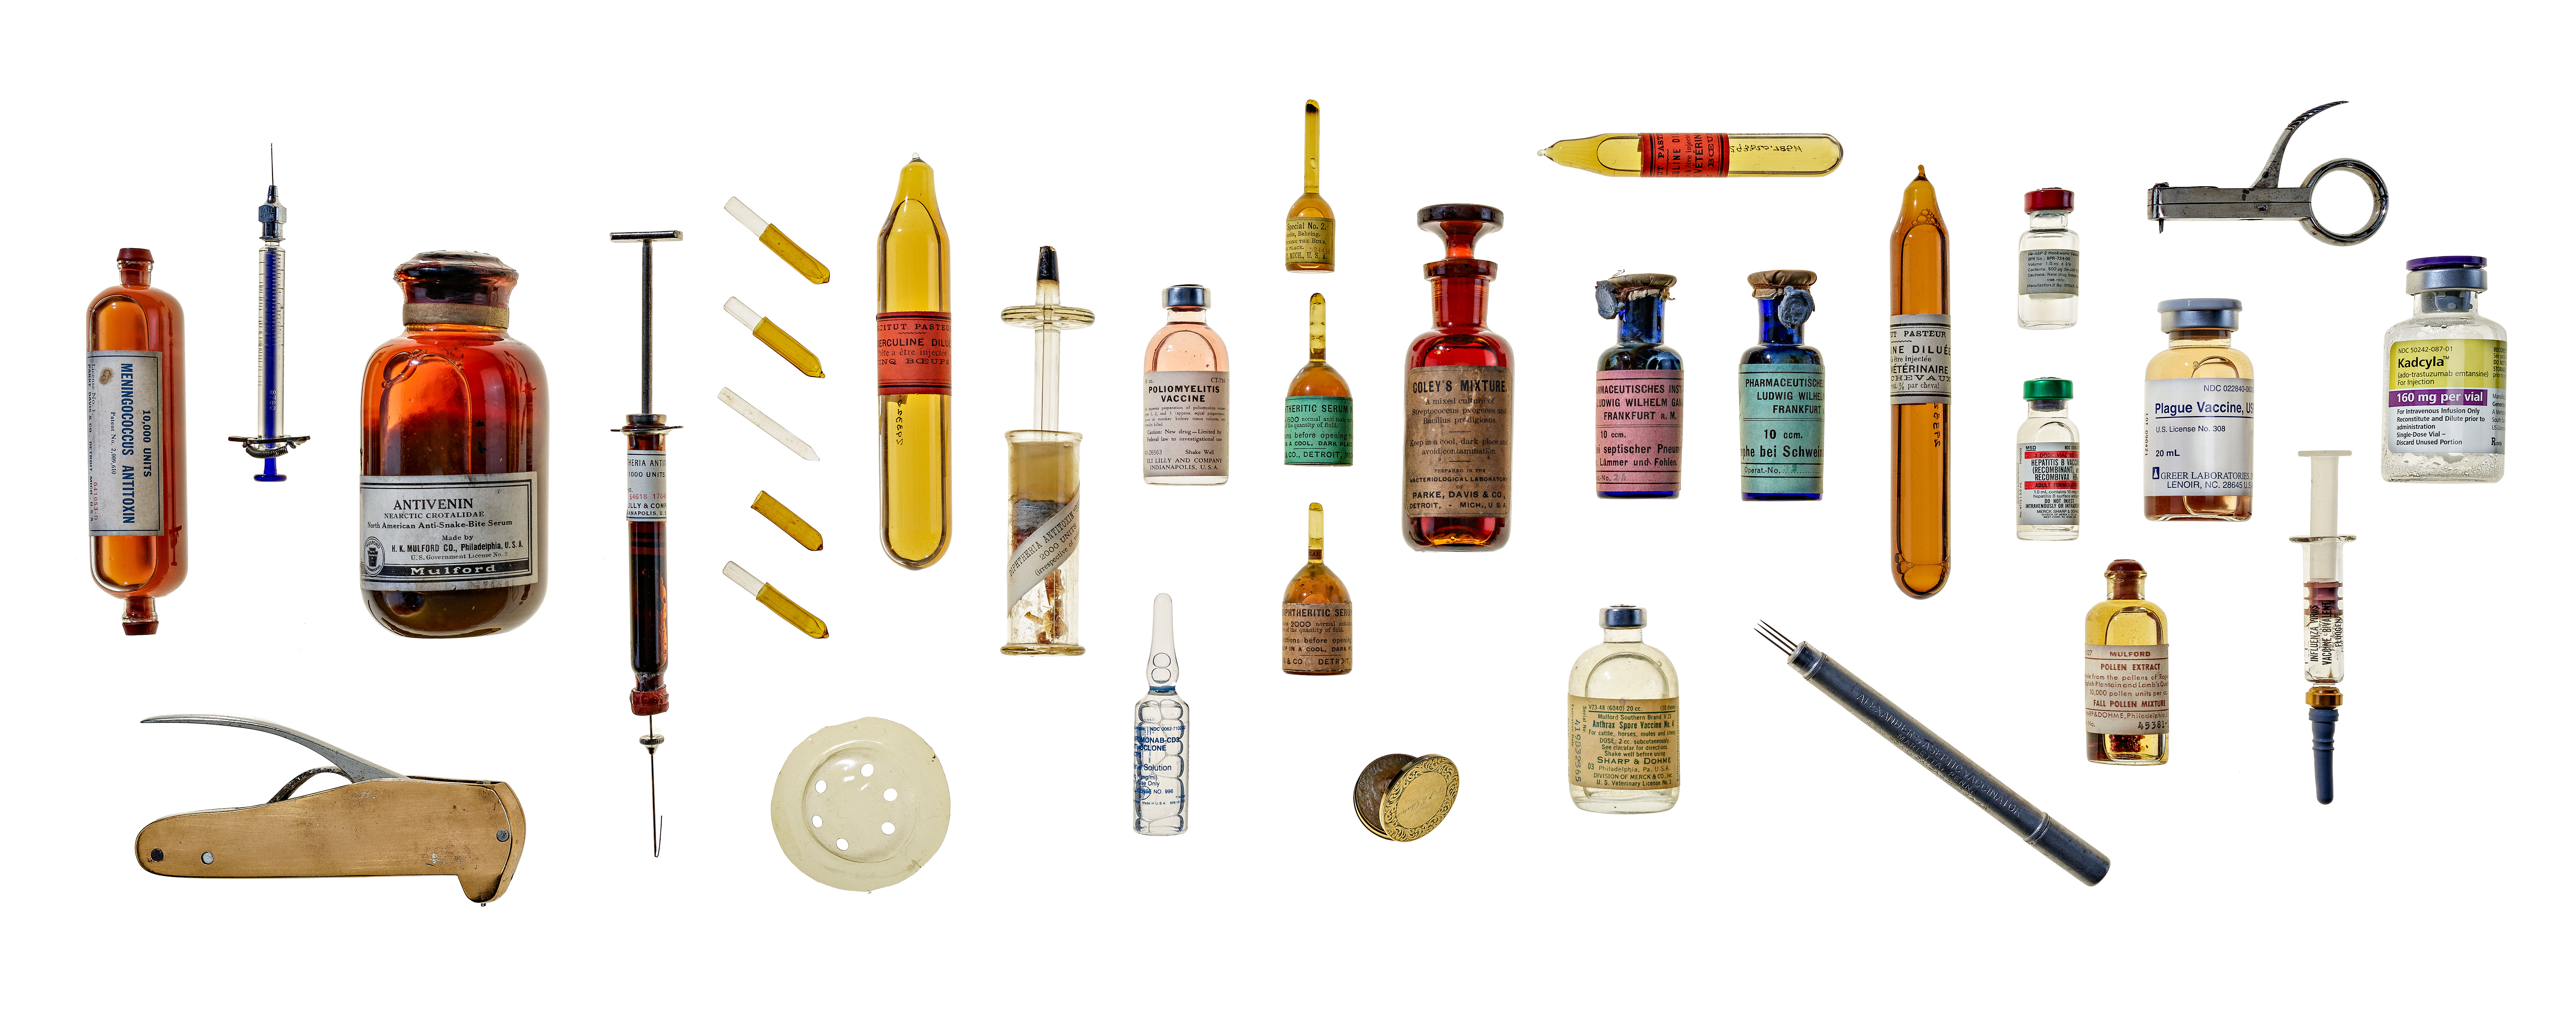 Various bottles and medical instruments